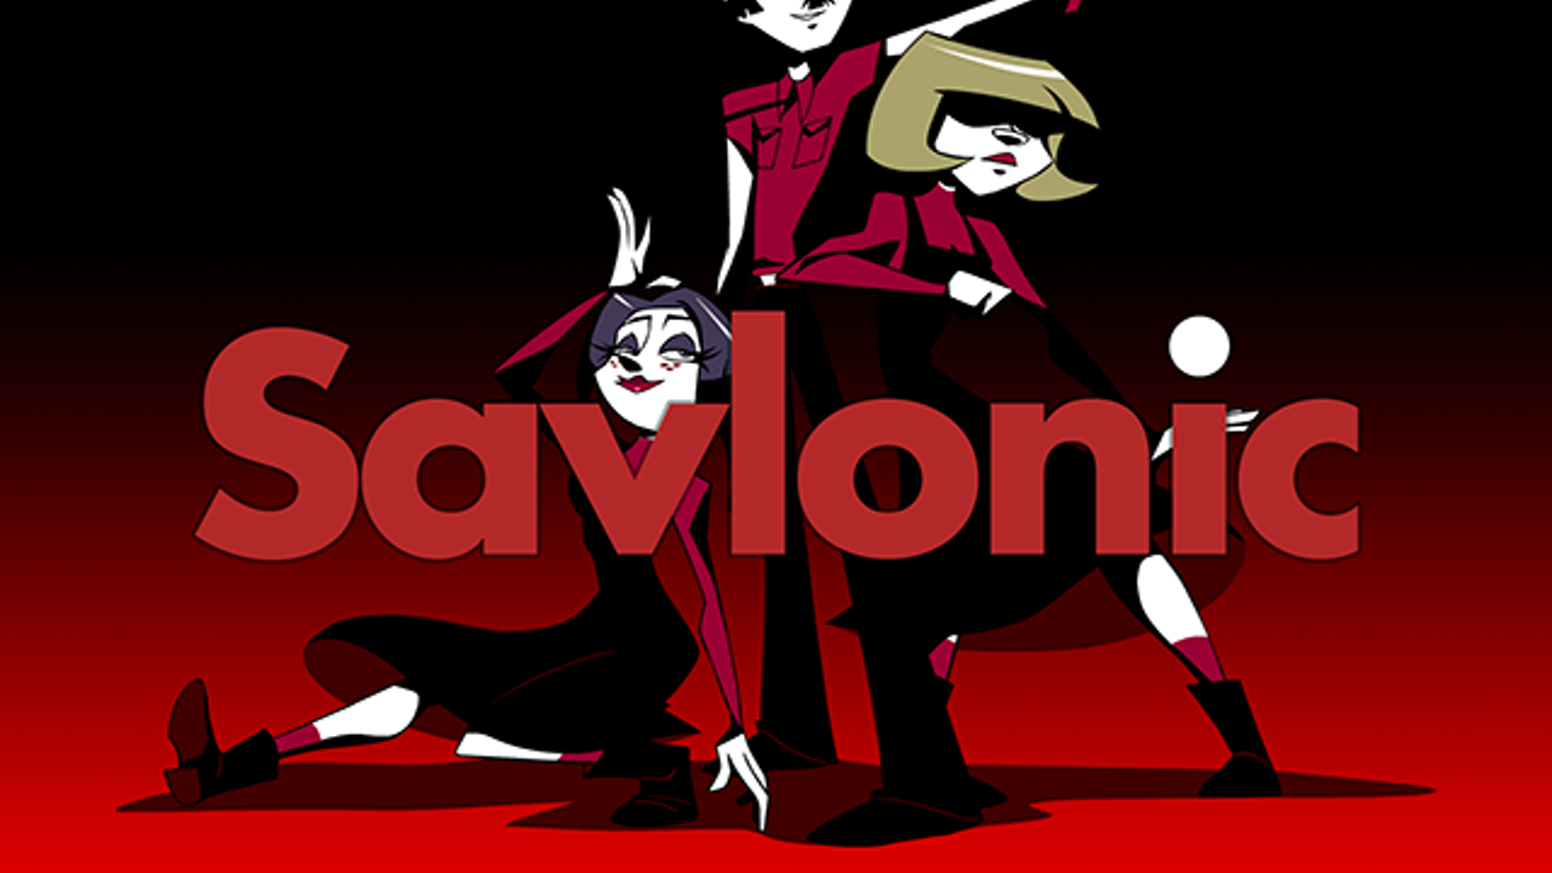 Highly anticipated release of animated electro pop band Savlonic's debut album in a number of digital AND physical formats.